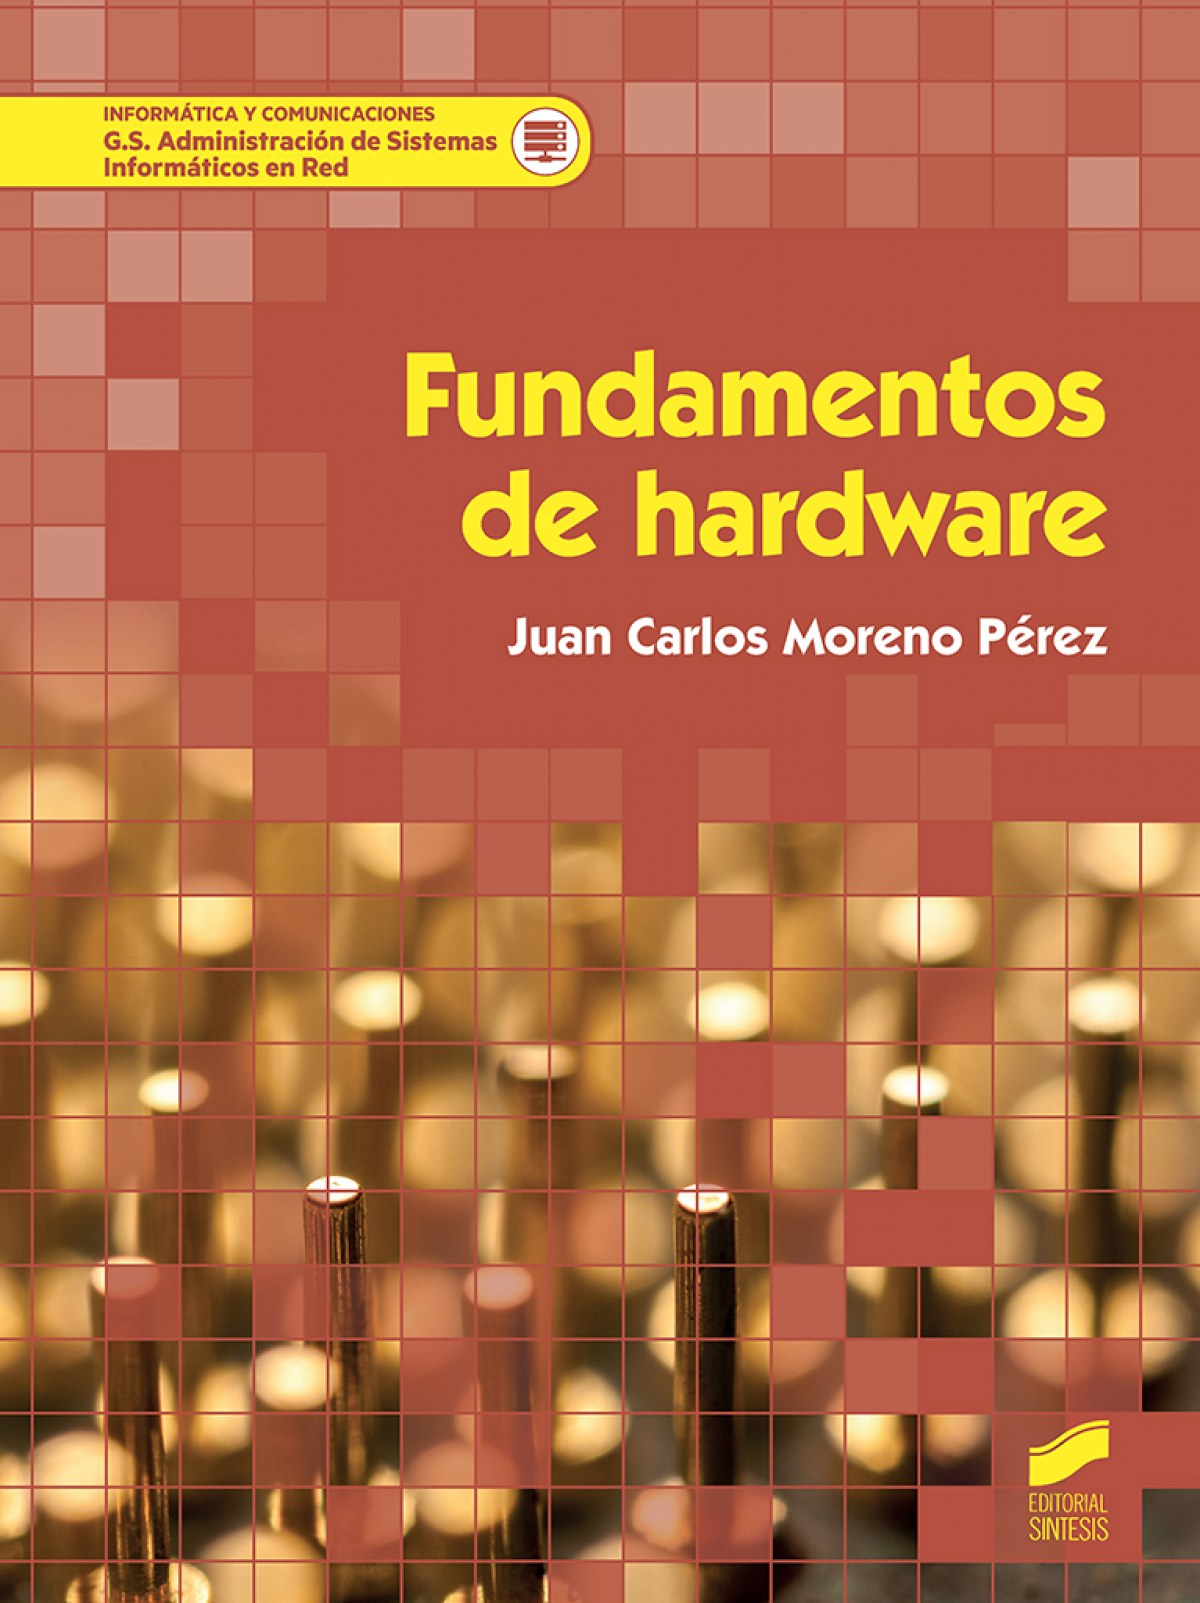 FUNDAMENTOS DE HARDWARE 2019